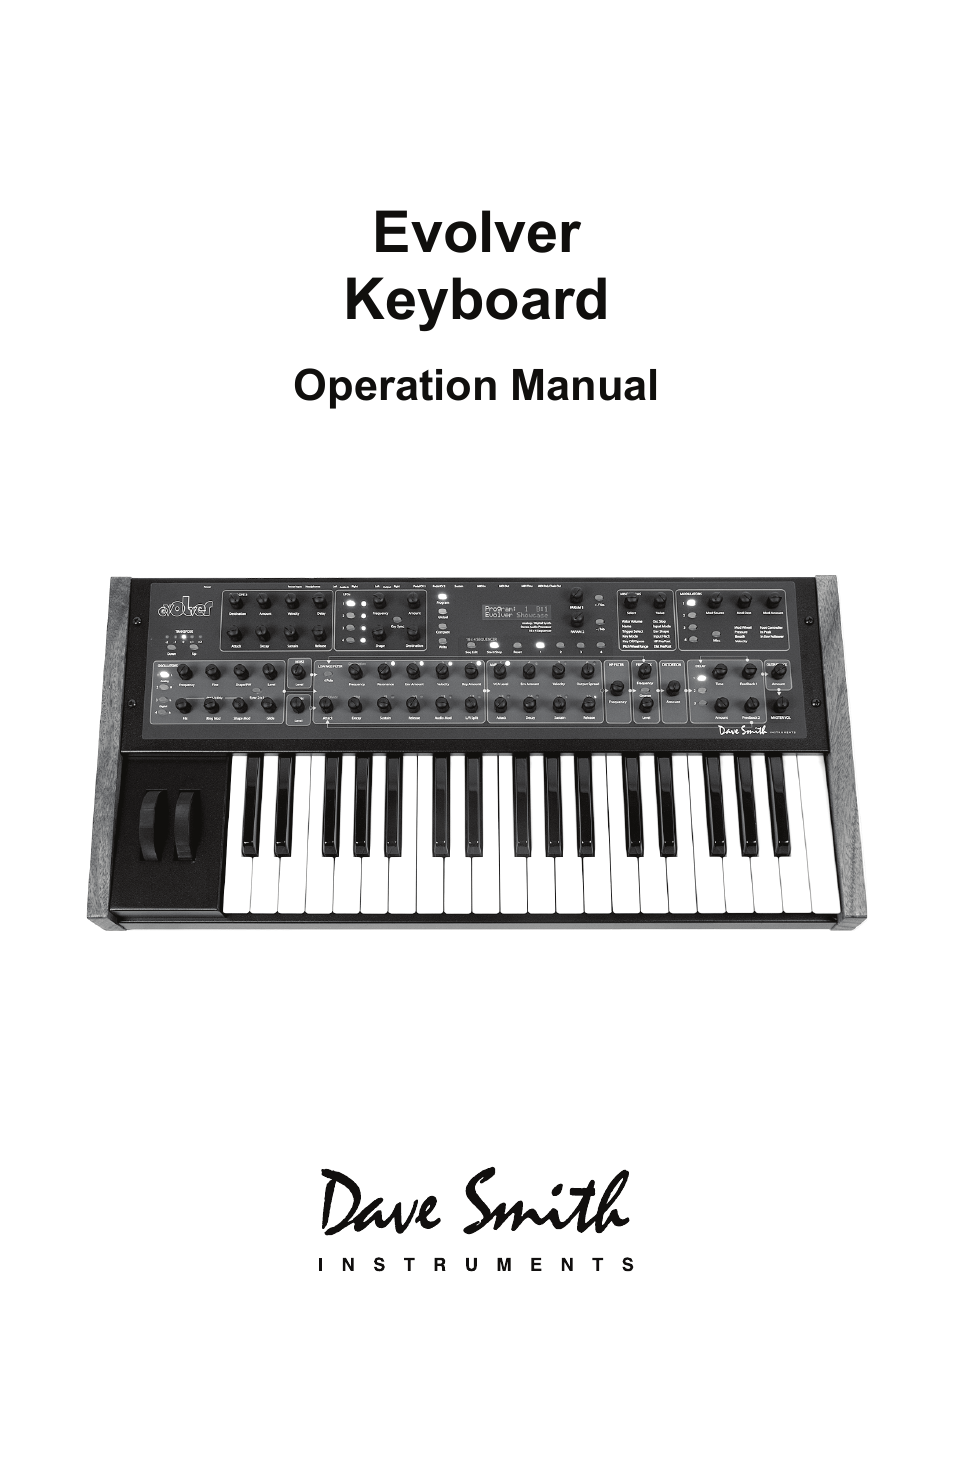 Dave Smith Instruments MONO EVOLVER KEYBOARD User Manual